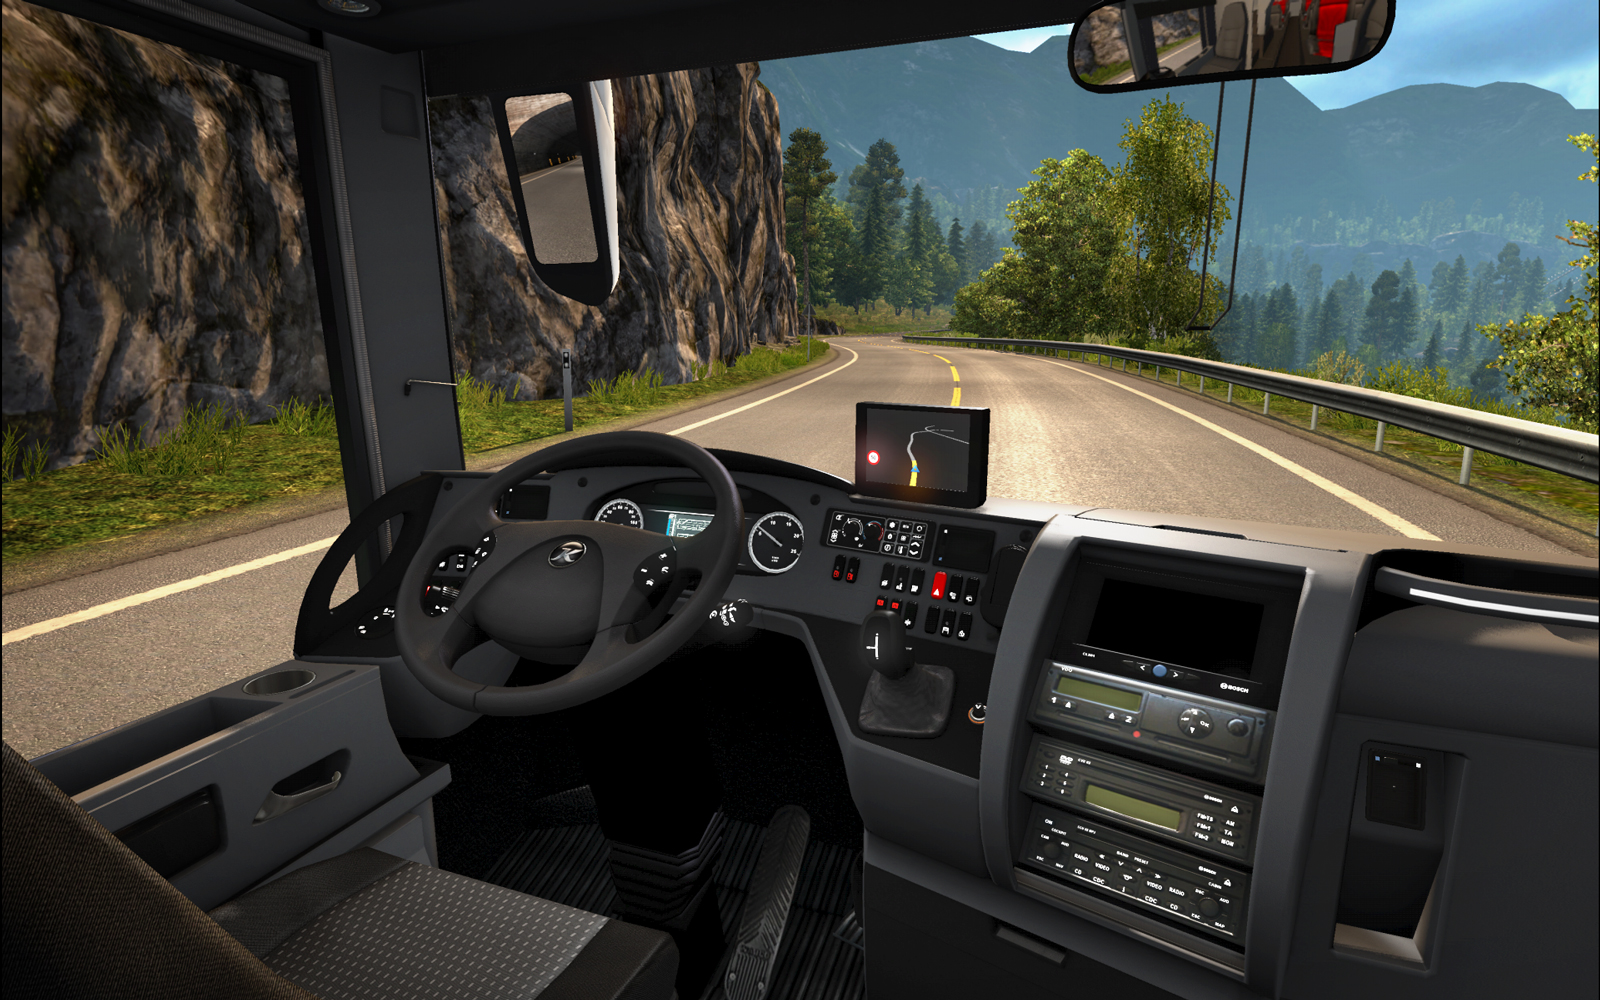 https://scs-misc.s3.amazonaws.com/newsletter/1/images/euro_coach_simulator_2_1600.jpg